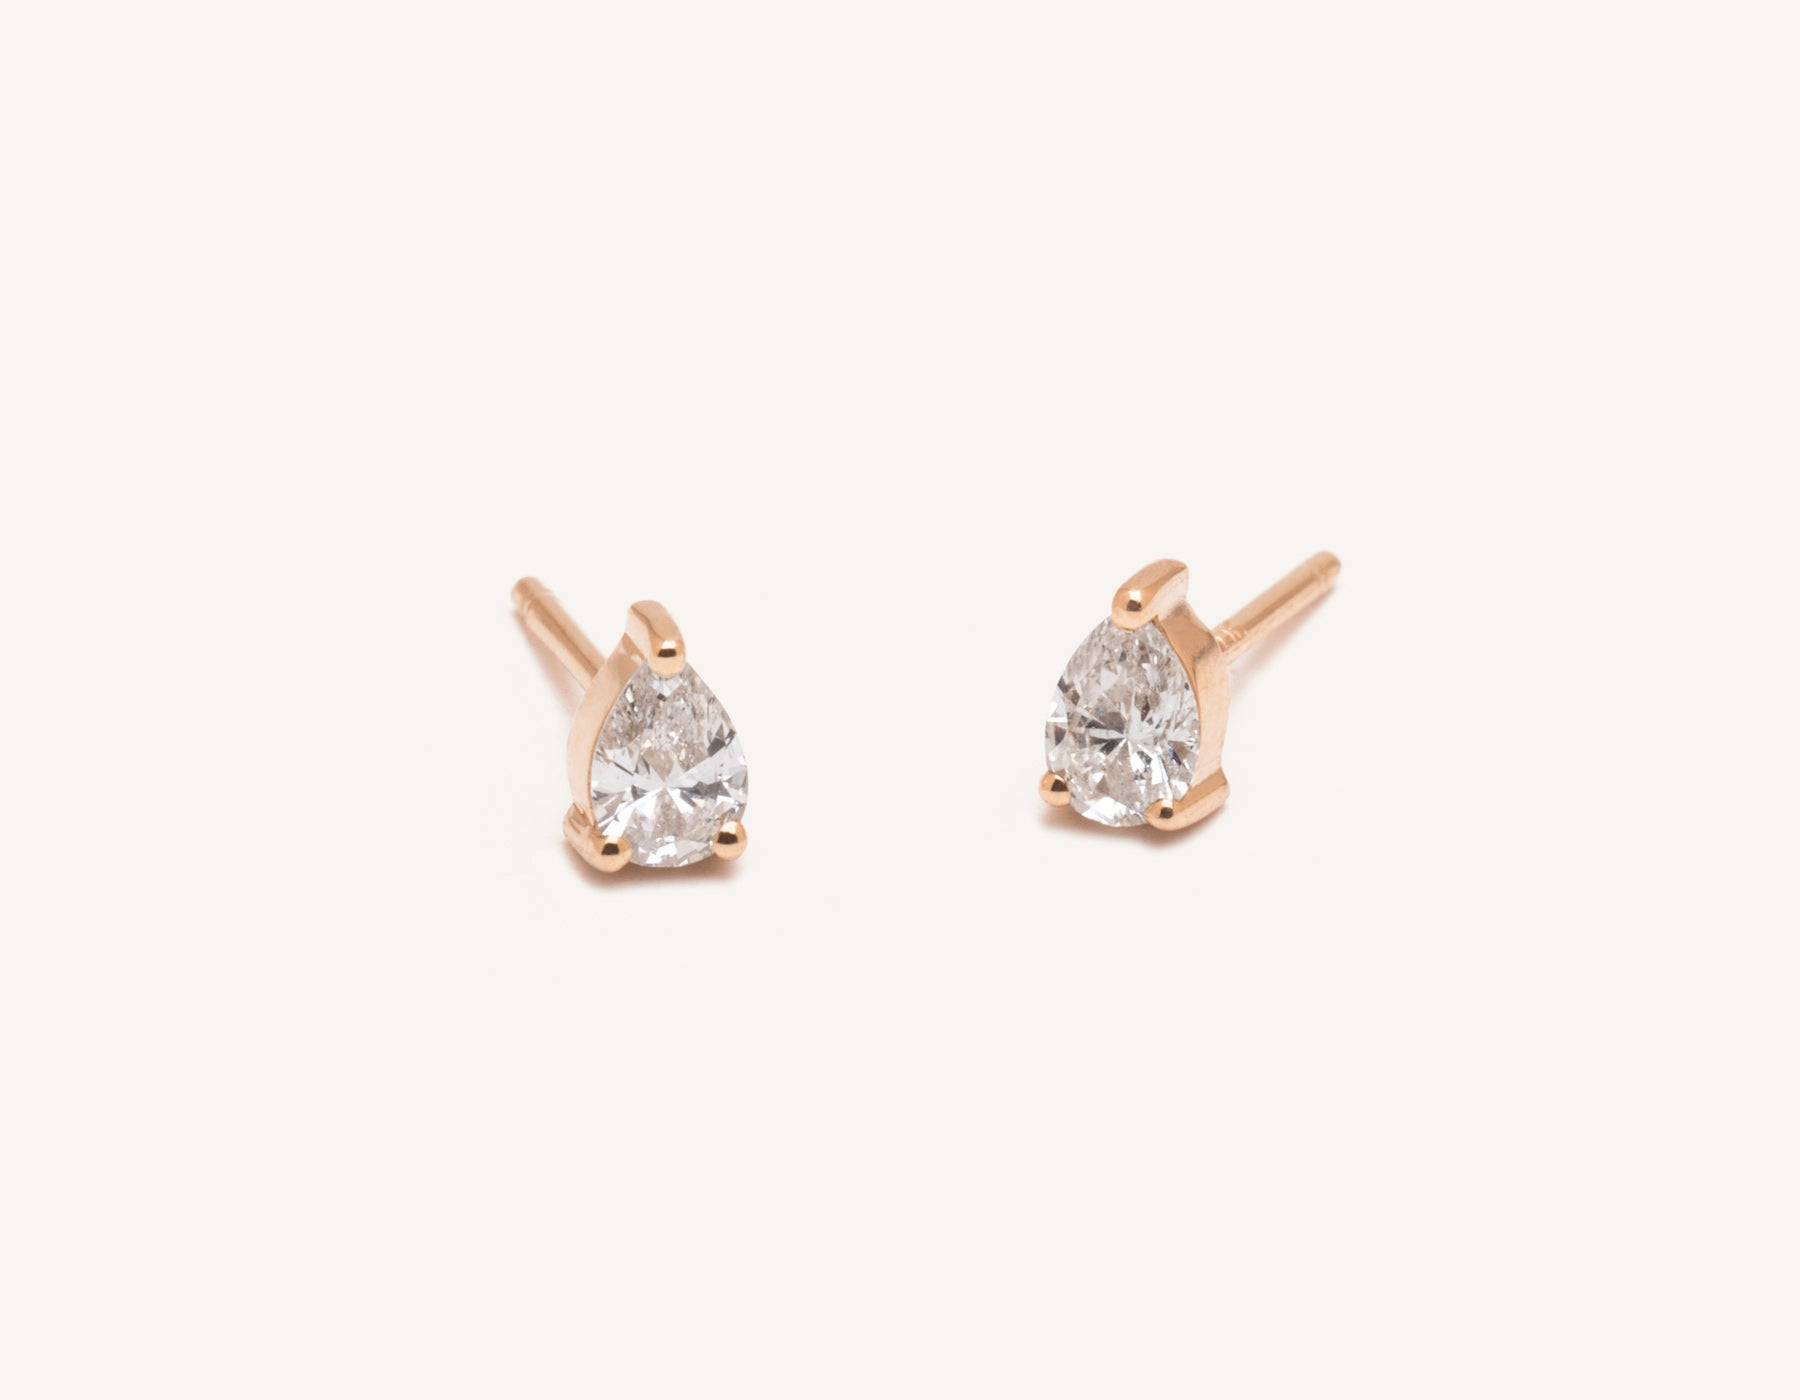 Vrai & Oro 14k pear diamond earrings simple classic stud post, 14K Rose Gold